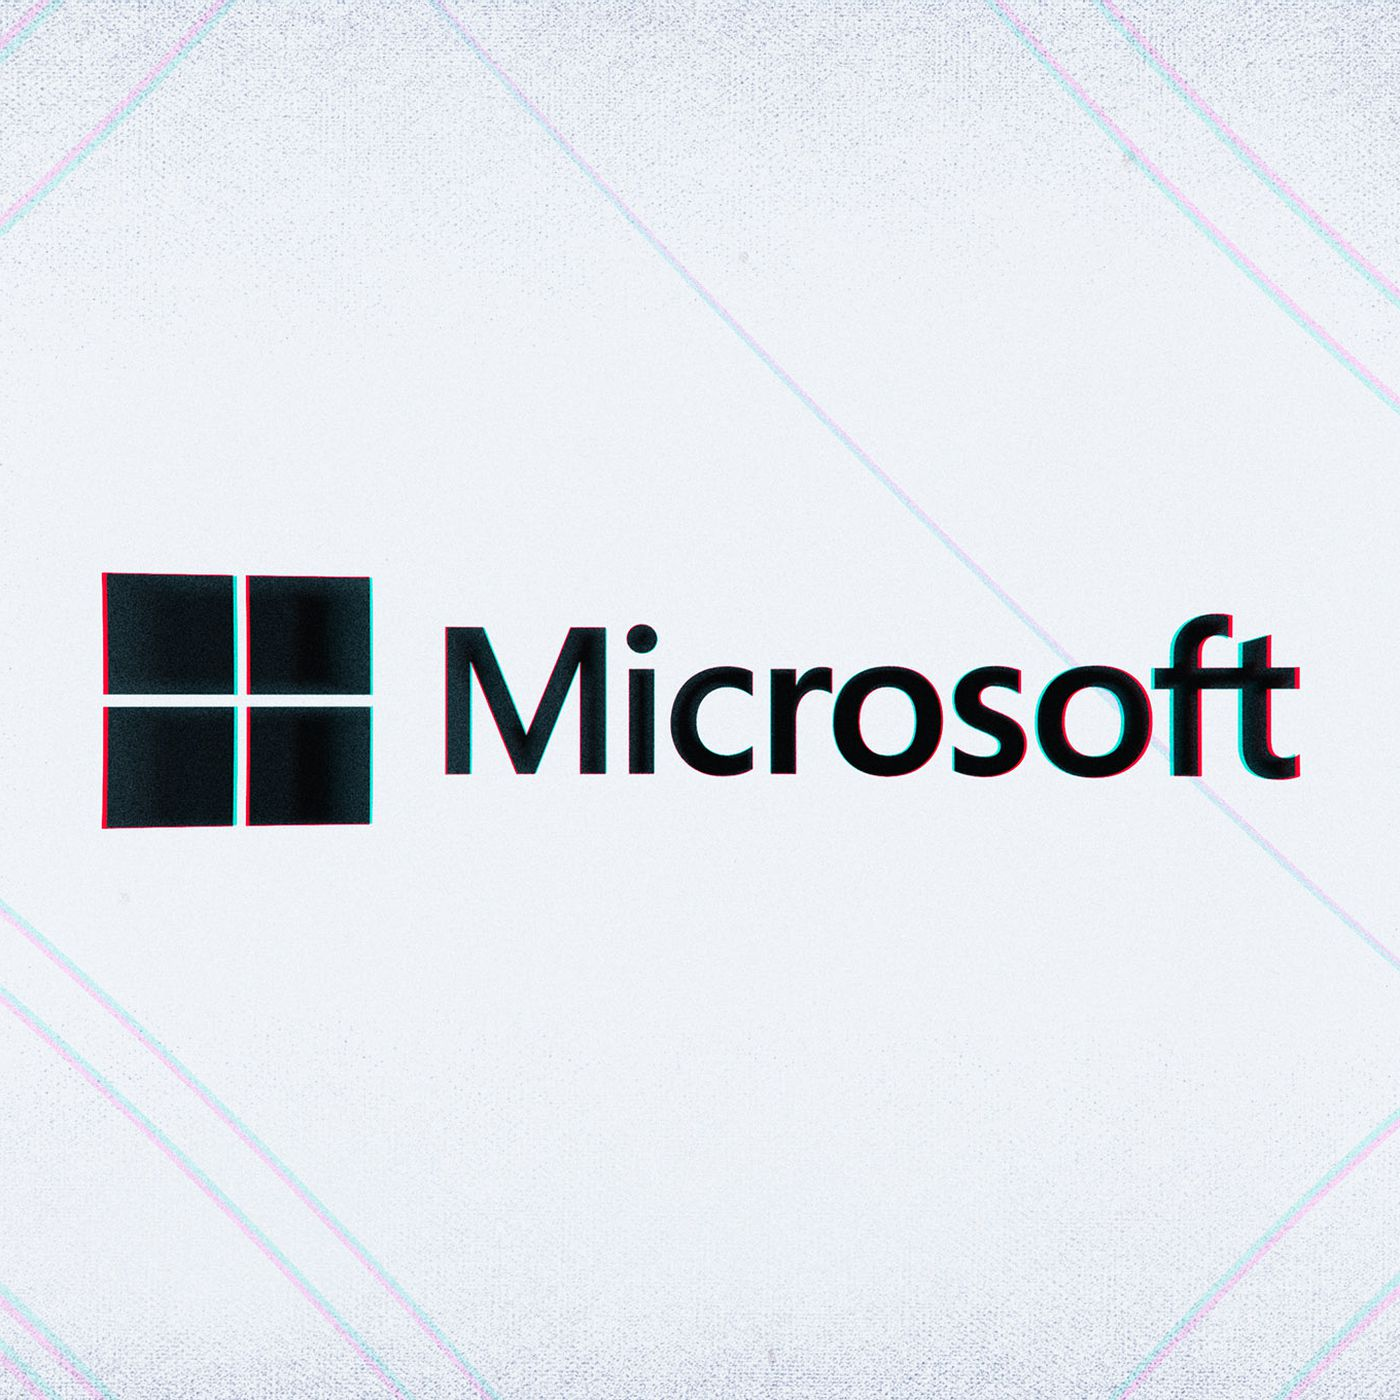 theverge.com - Tom Warren - Microsoft adds a digital health feature to its Android launcher